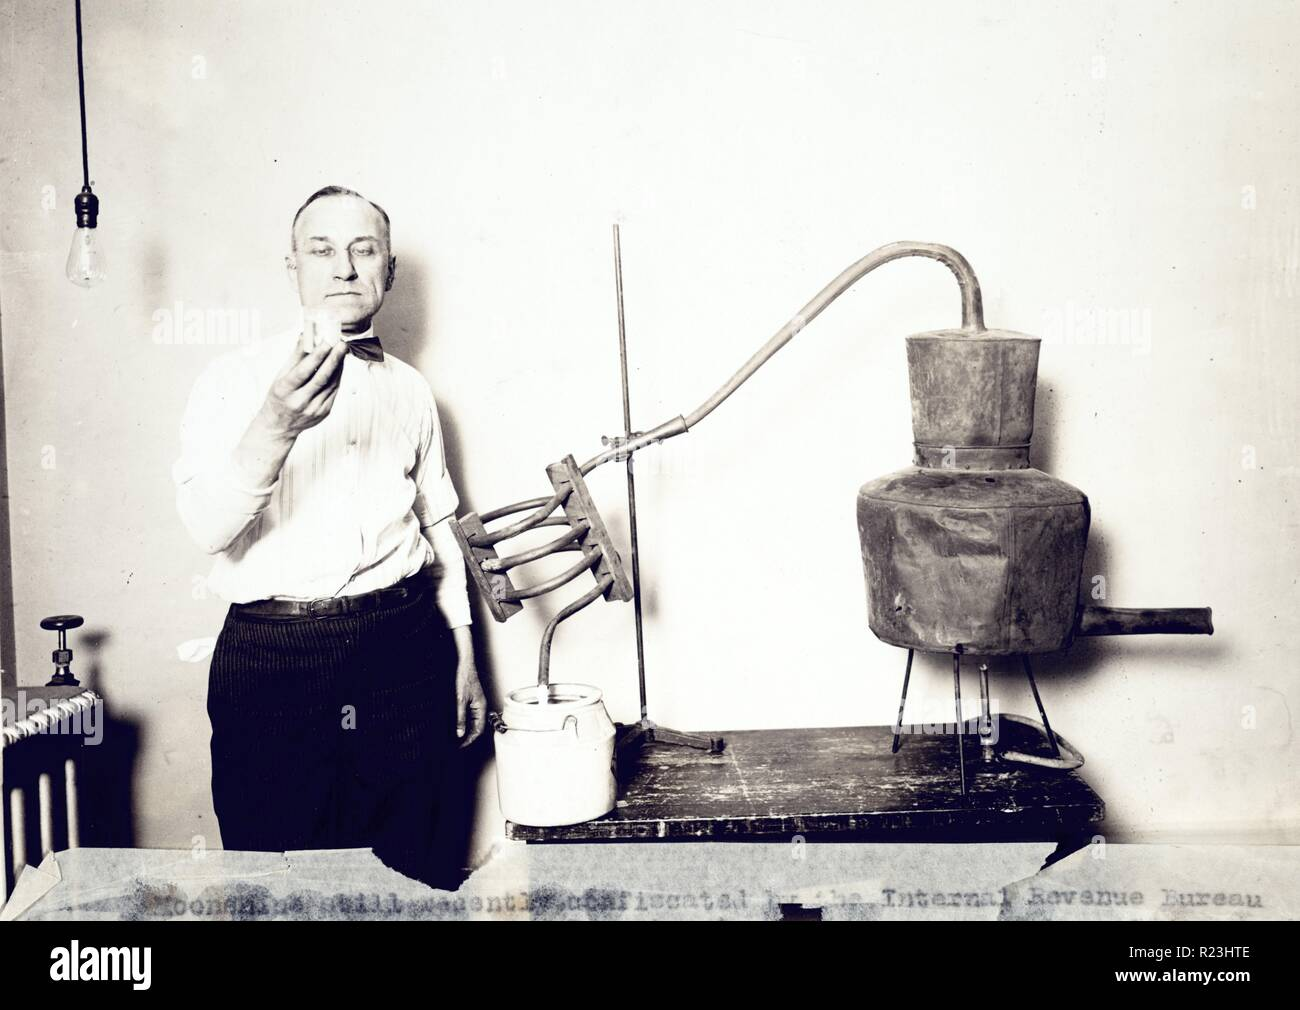 Moonshine still recently confiscated by the Internal Revenue Bureau photographed at the Treasury Department. Man standing next to still looking at contents of glass. 1921 - Stock Image